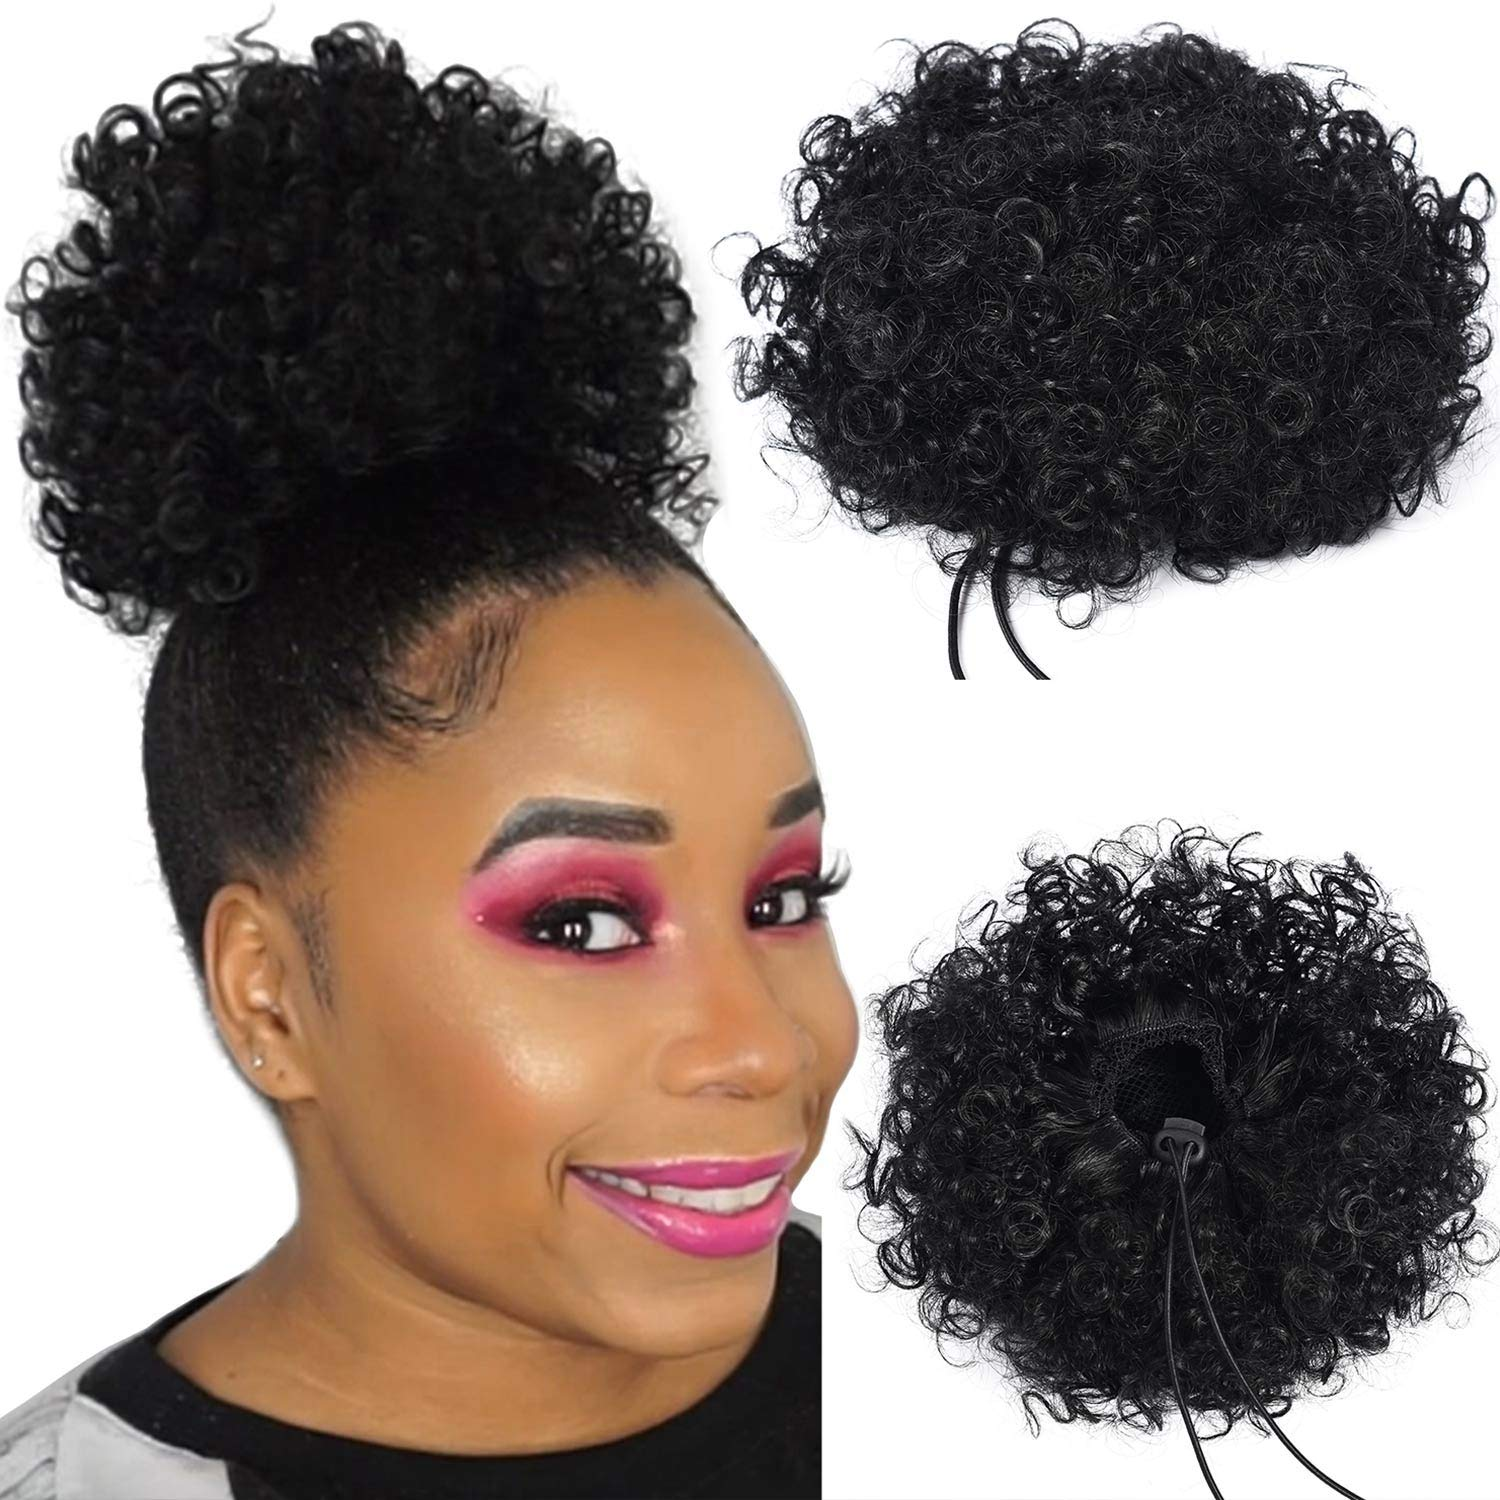 Armmu Afro Kinky Curly Hair Bun Wrap Drawstring High Puff Ponytail Short Updo For Natural Hair With 2 Clips 1b